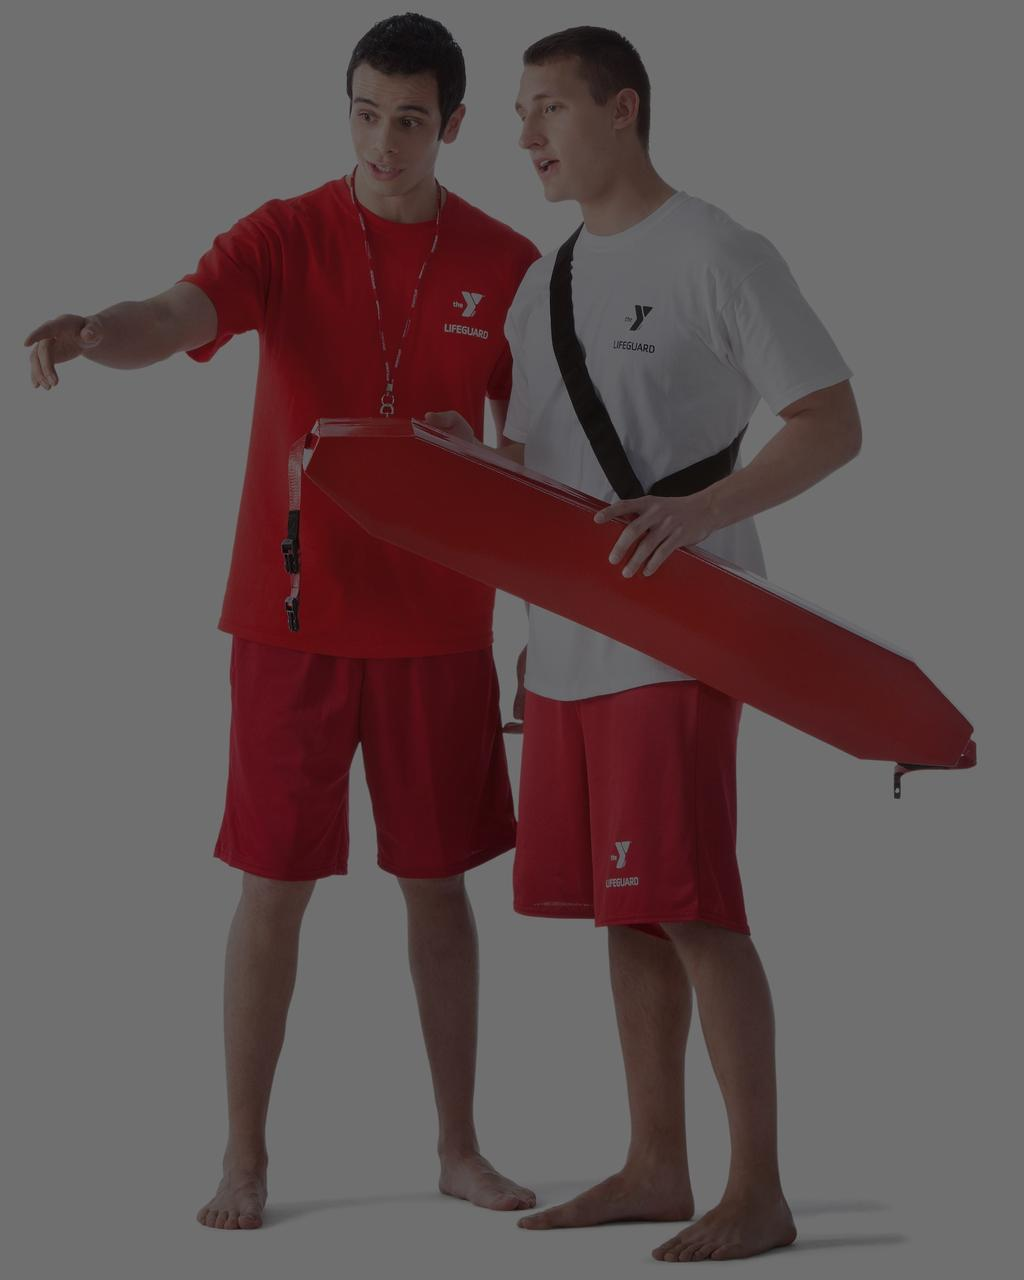 SAFE Y FIRST AMERICAN RED CROSS LIFEGUARD CERTIFICATION CLASSES American Red Cross Water Safety Instructor (WSI) The purpose of the American Red Cross Lifeguard course is to provide entry level